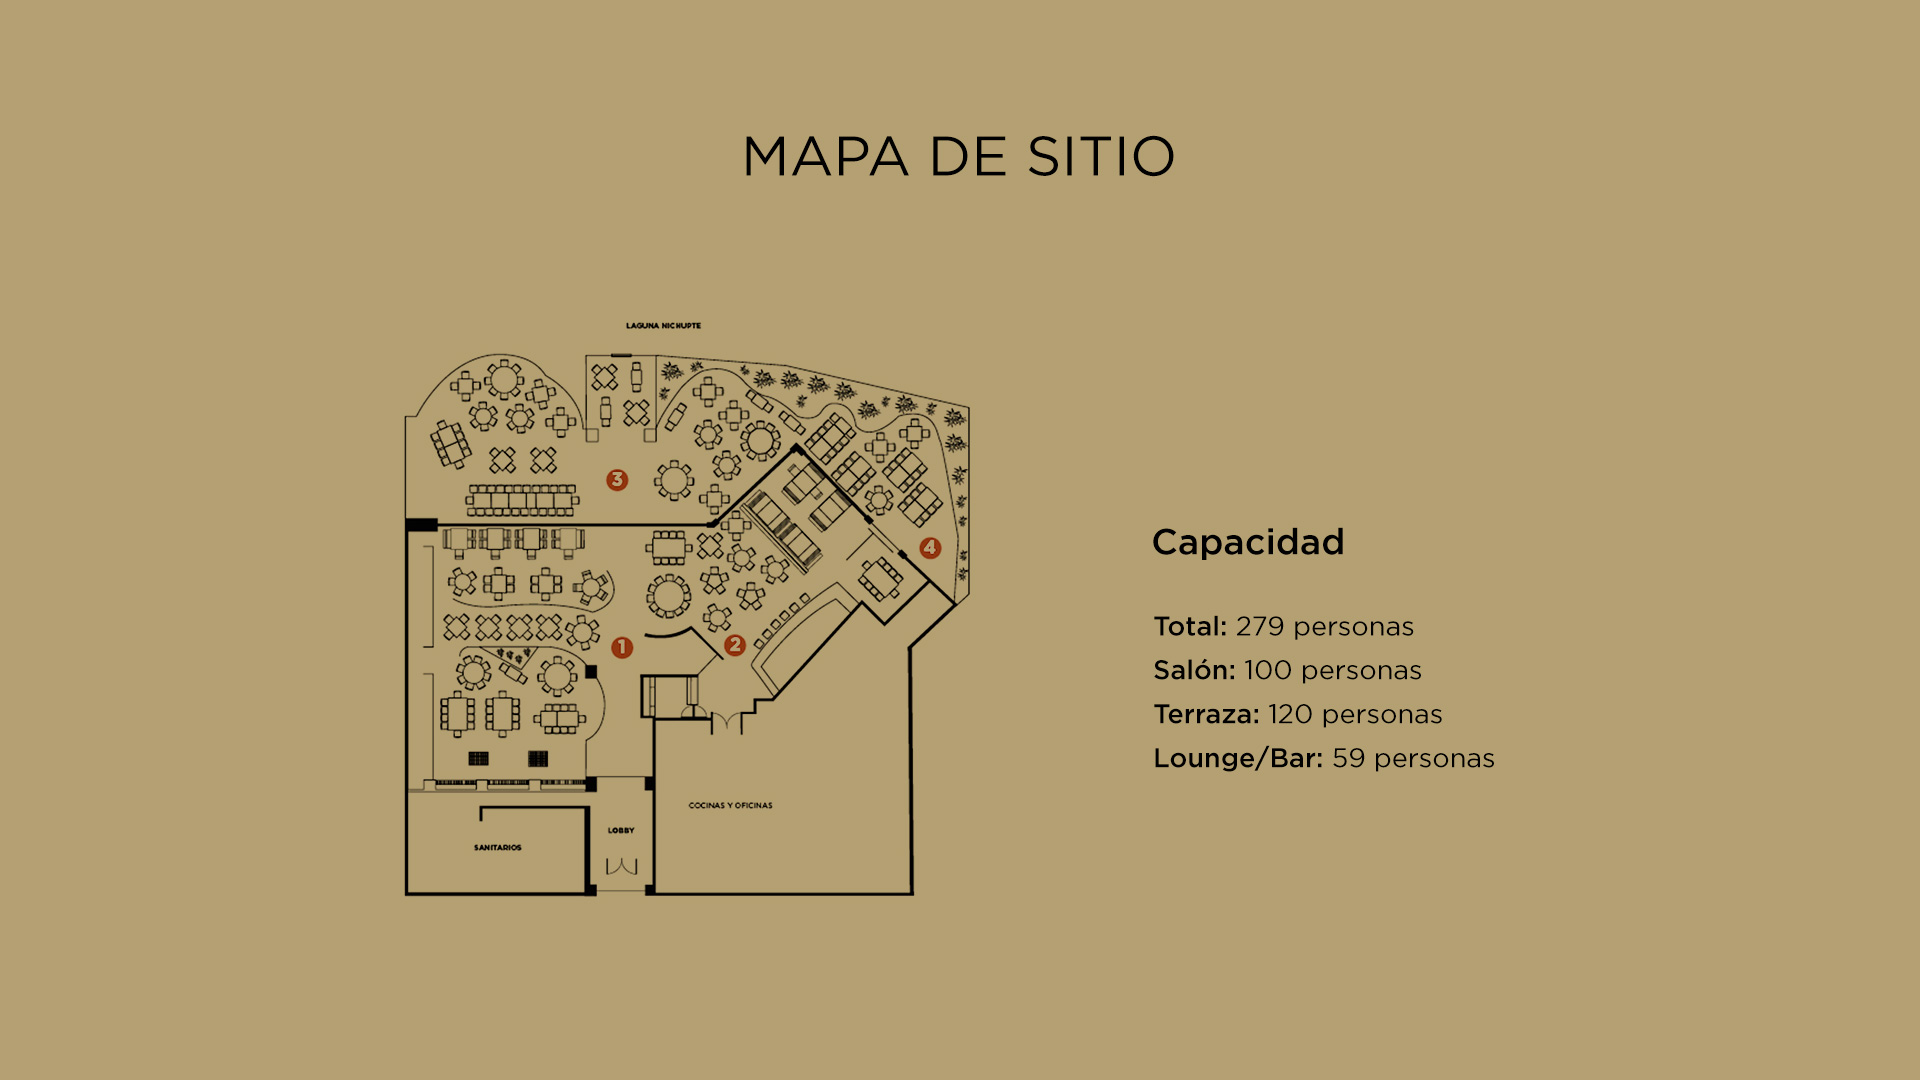 Harrys Mapa 1920x1080 Cancun